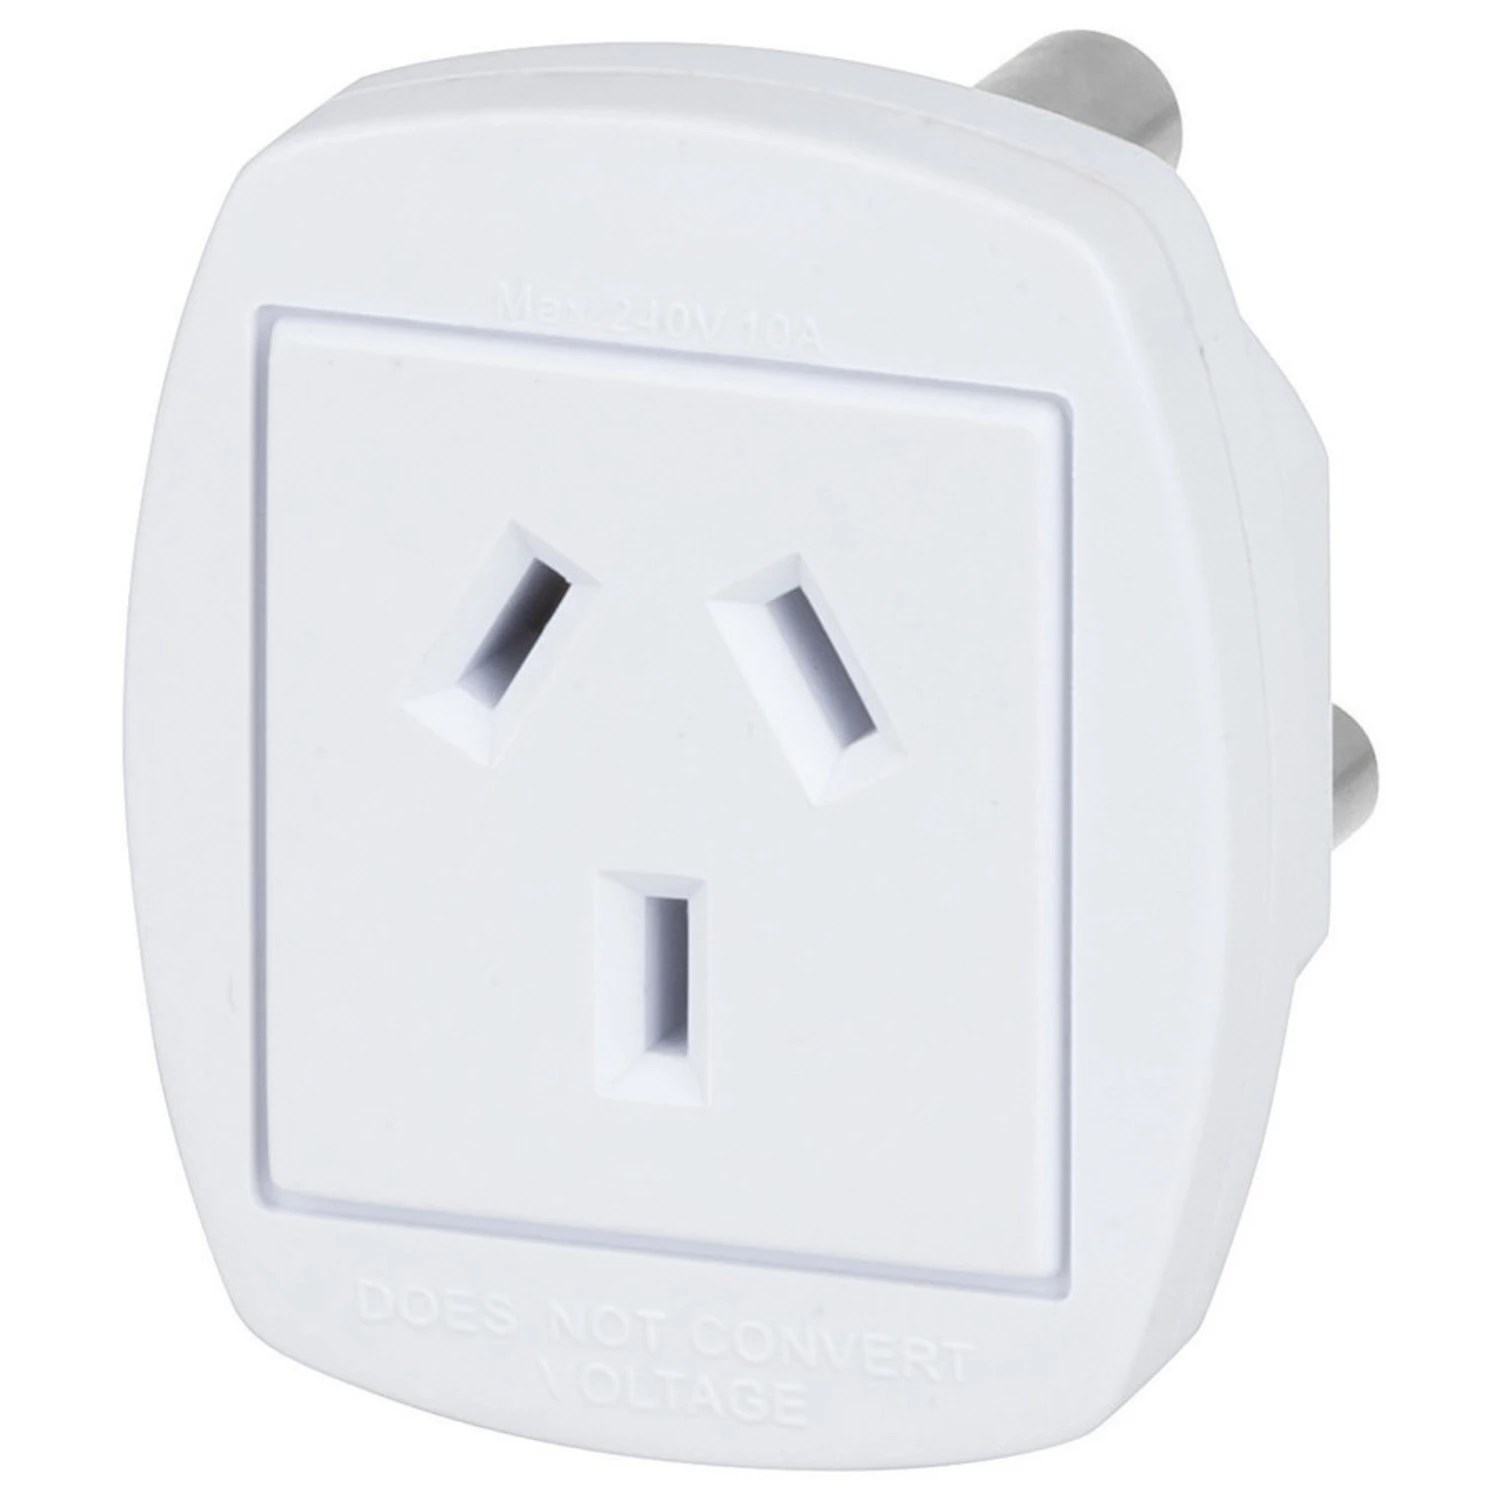 Australia Power Socket Mains Travel Adaptor For Australia New Zealand Going To South